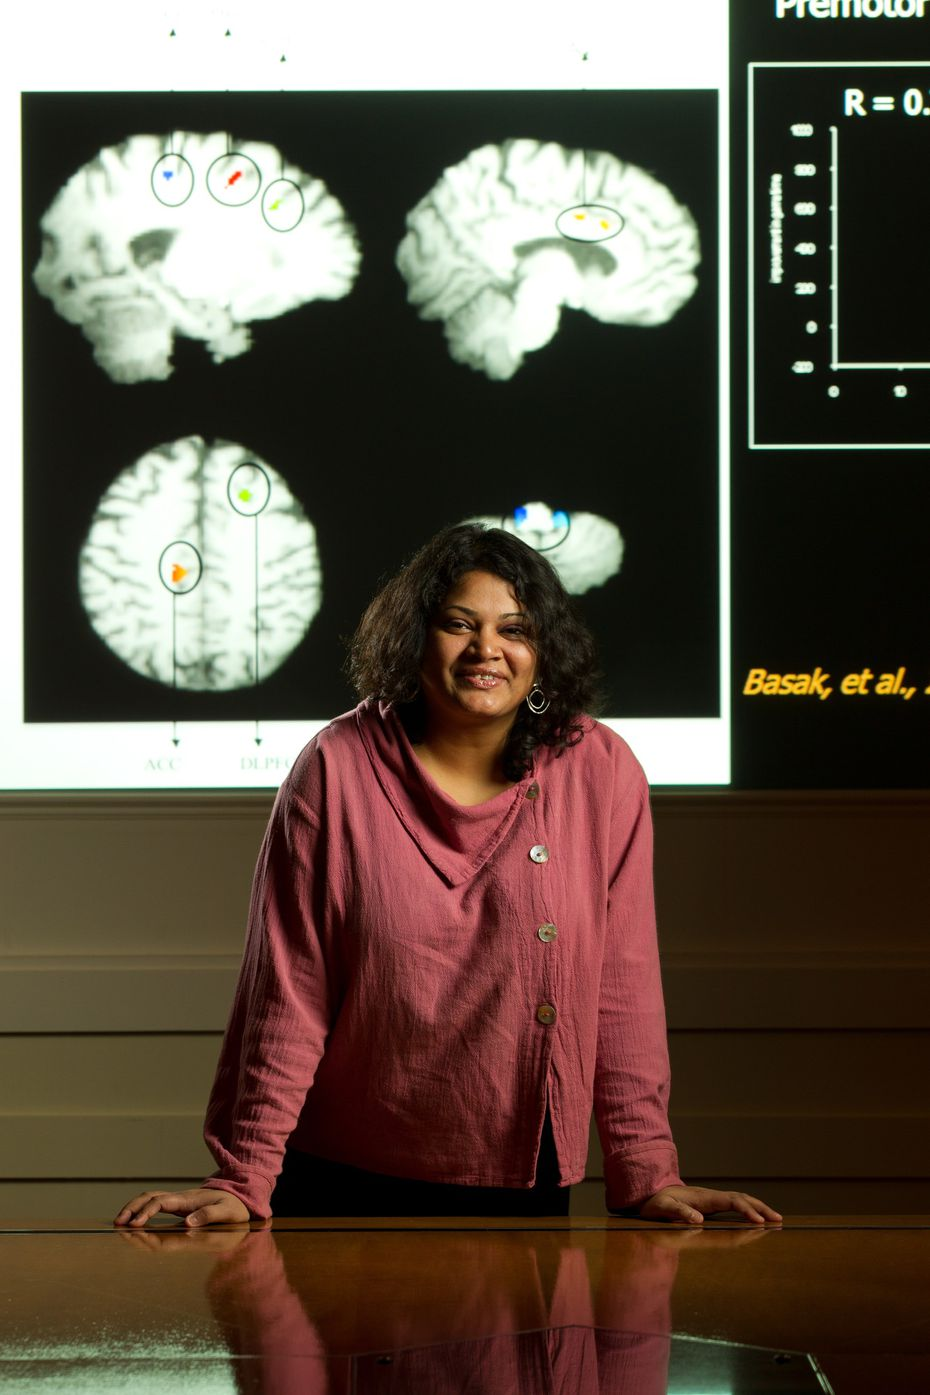 Chandramallika Basak, a cognitive neuroscientist at UT-Dallas, poses for a portrait in front of images of brain scans. Though Basak couldn't conduct brain scans this summer, she was still able to collect psychological data from participants in her brain-training study.